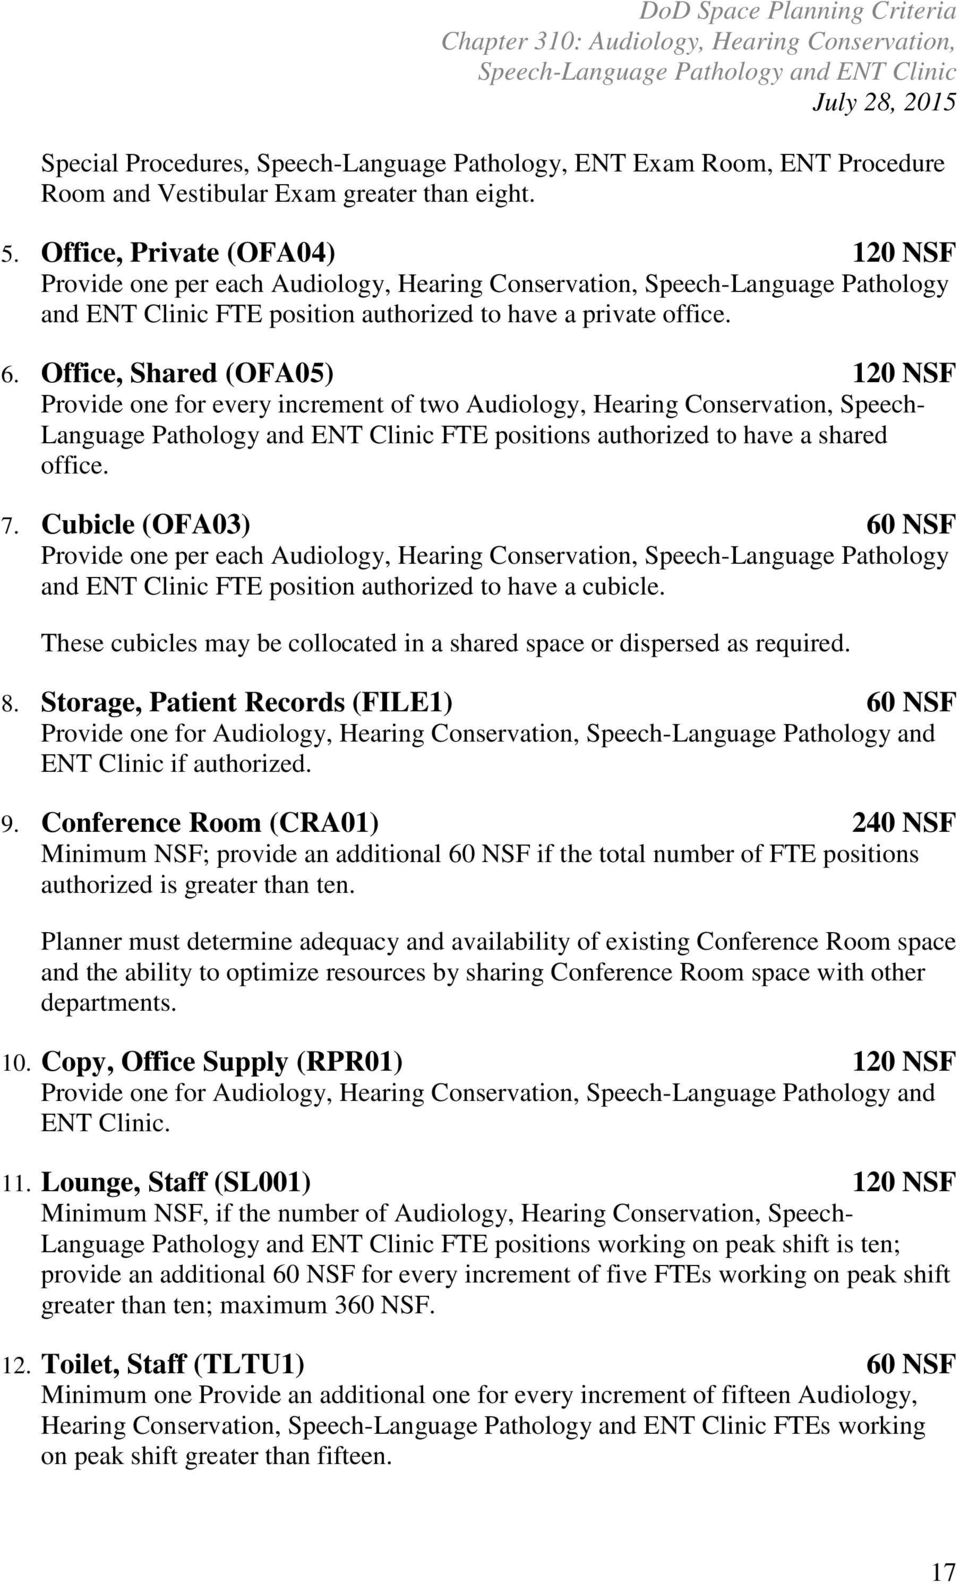 Office, Shared (OFA05) 120 NSF Provide one for every increment of two Audiology, Hearing Conservation, Speech- Language Pathology and ENT Clinic FTE positions authorized to have a shared office. 7.